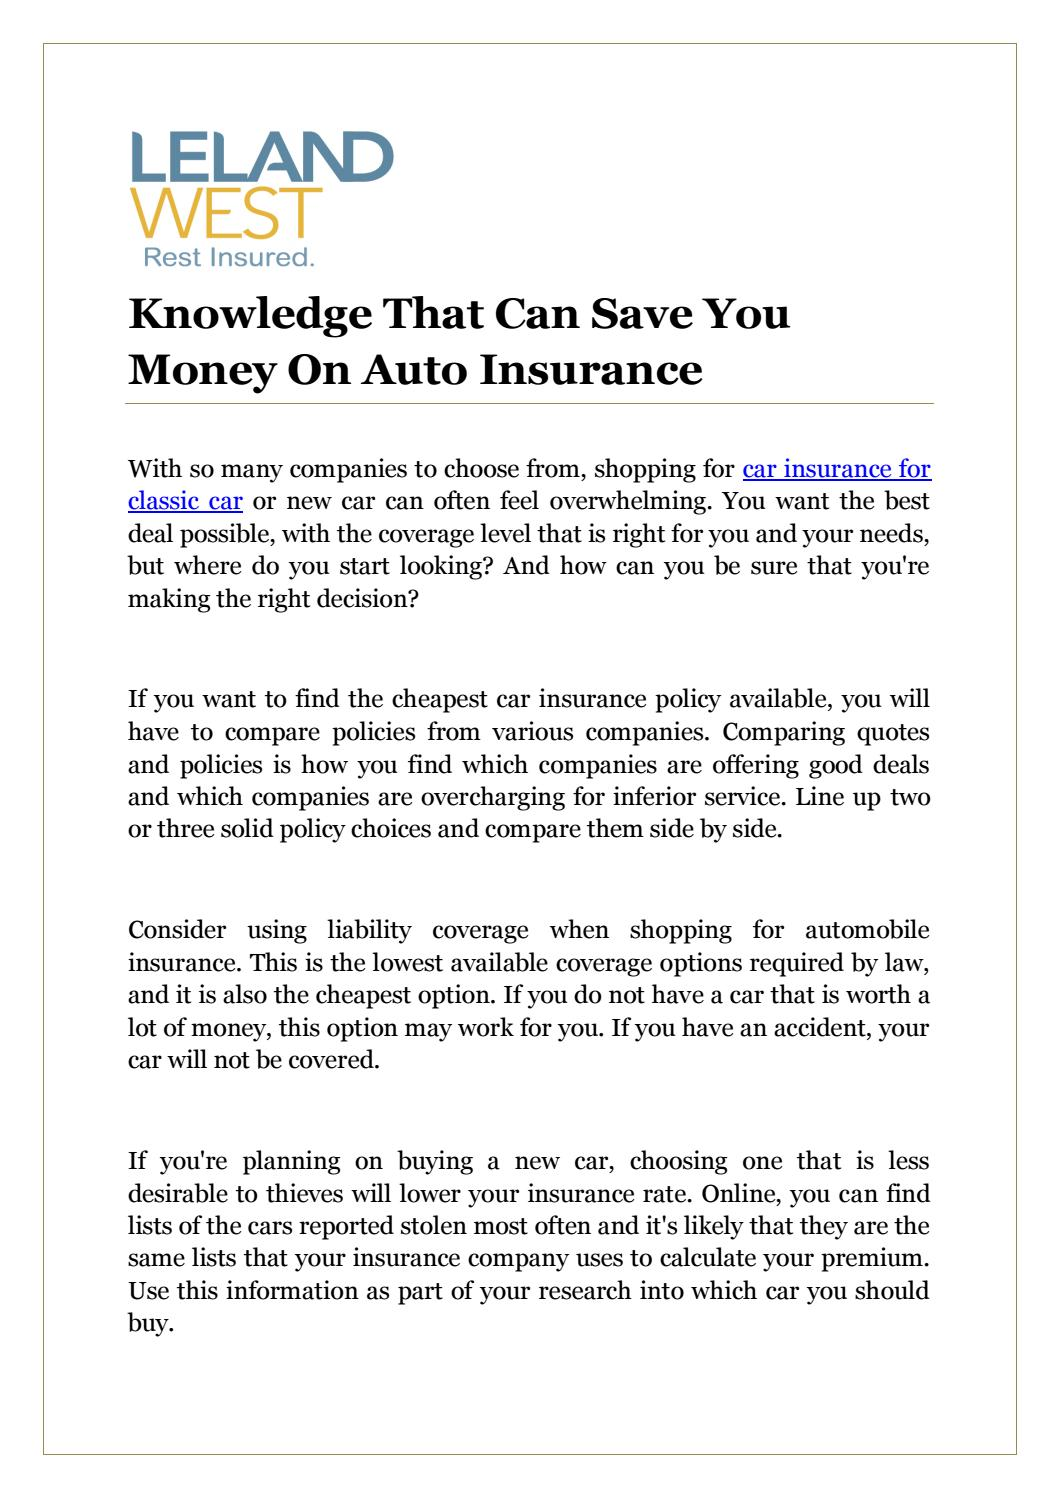 Knowledge That Can Save You Money On Auto Insurance By Antique Car Insurance Issuu